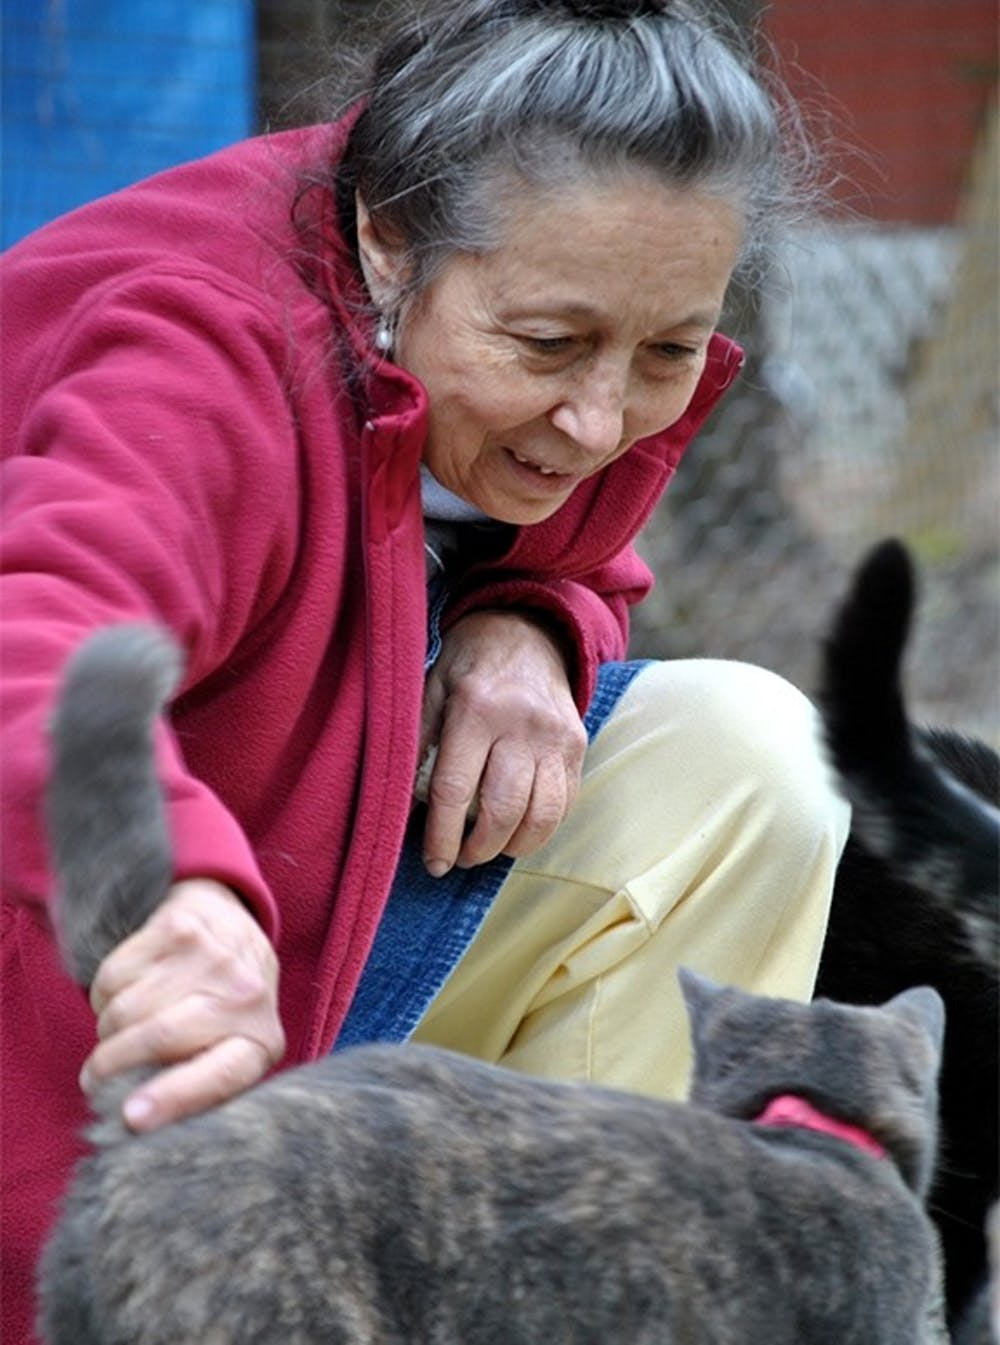 <p>Siglinda Scarpa, founder of the Goathouse Refuge, stops to pet one of around 200 cats that live at the rescue.</p> <p><br></p>